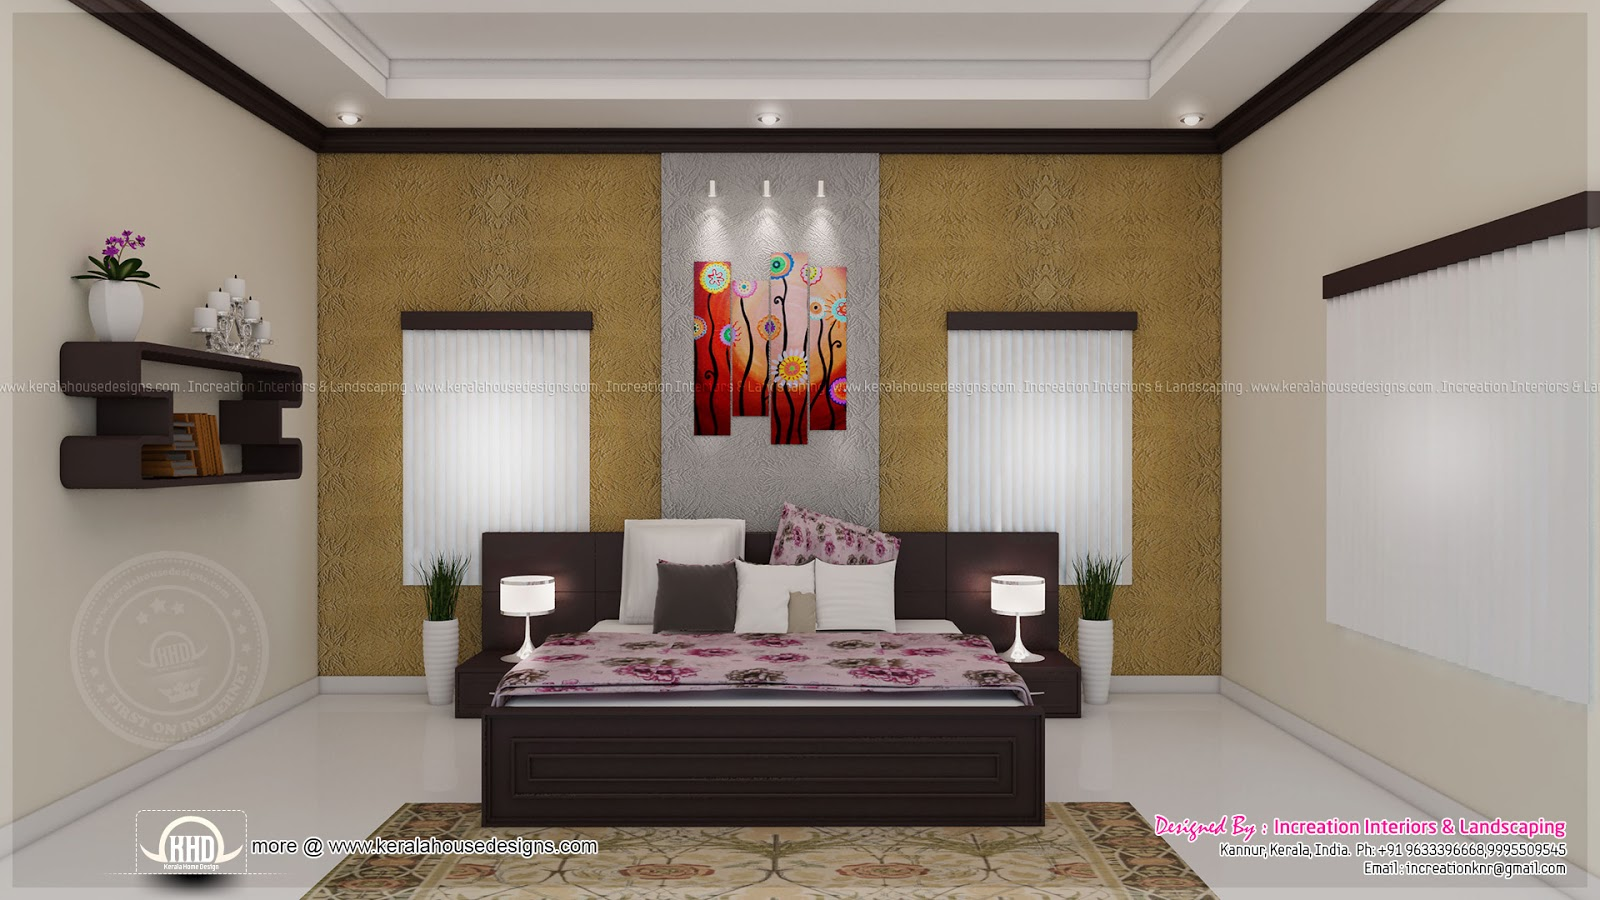 House interior ideas in 3d rendering kerala home design for Interior design styles master bedroom